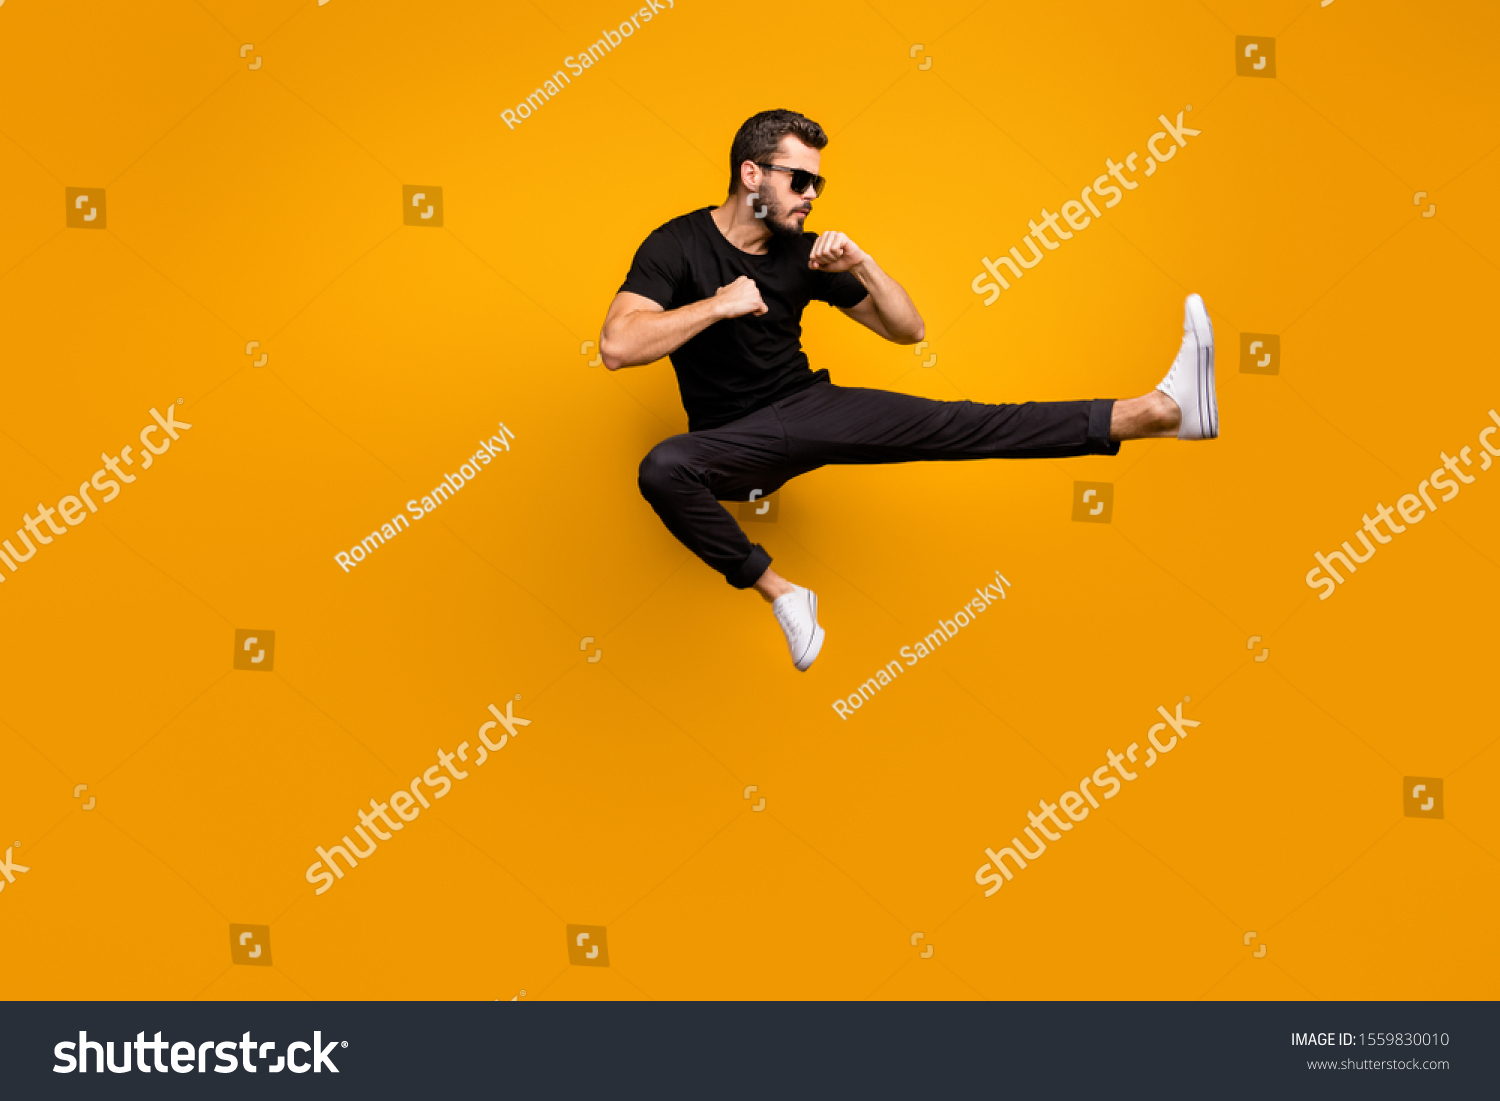 Full length photo of handsome guy jumping high practicing self defense kicking confident facial expression wear sun specs black t-shirt pants isolated yellow color background #1559830010